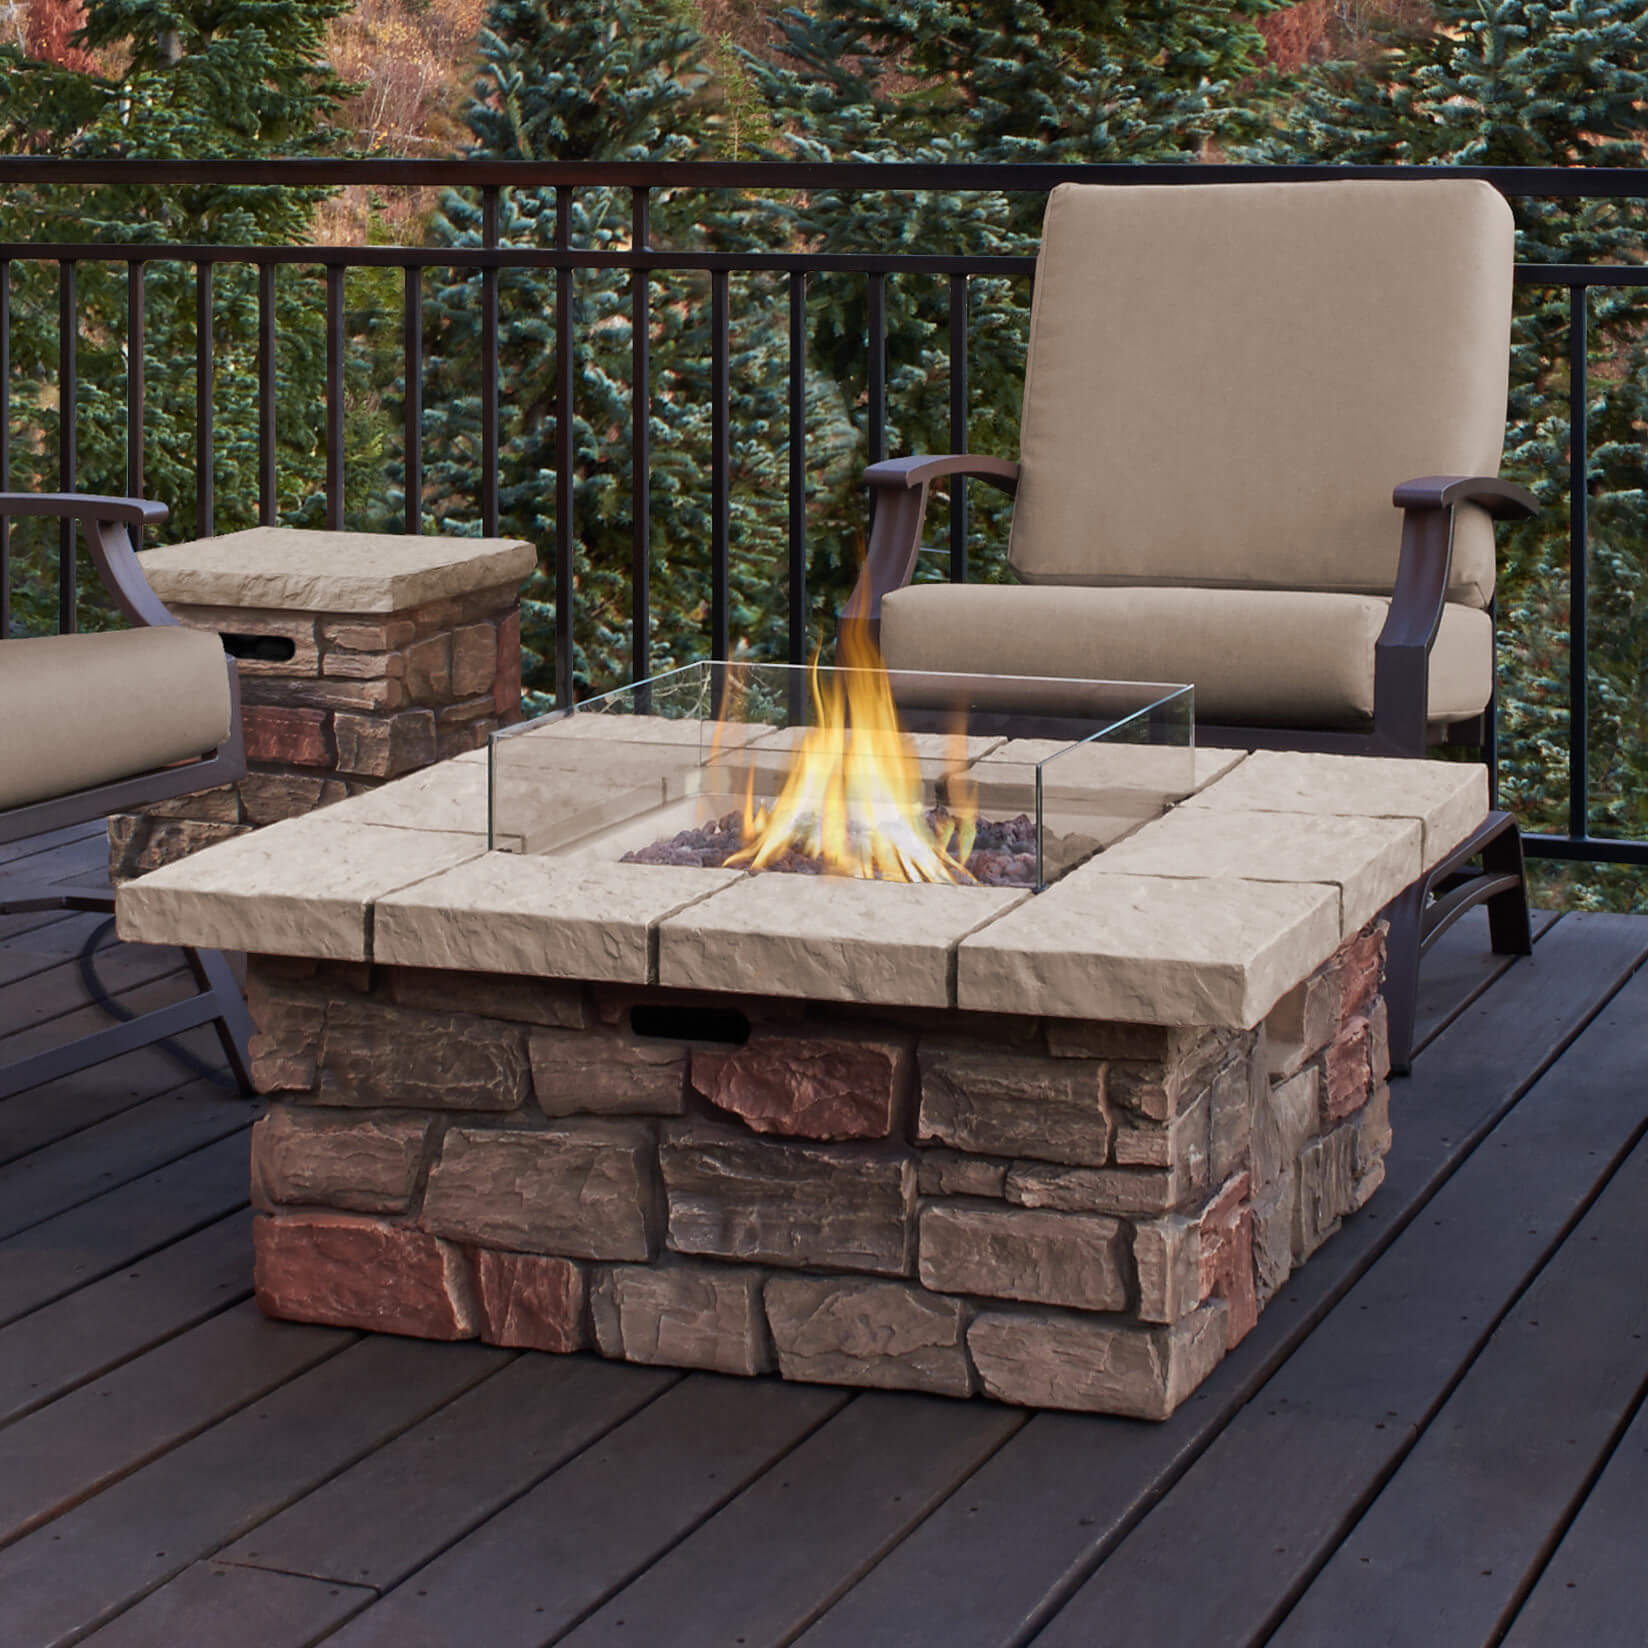 Cozy Give your home a cool fire pit table with this brick façade propane propane patio fireplace